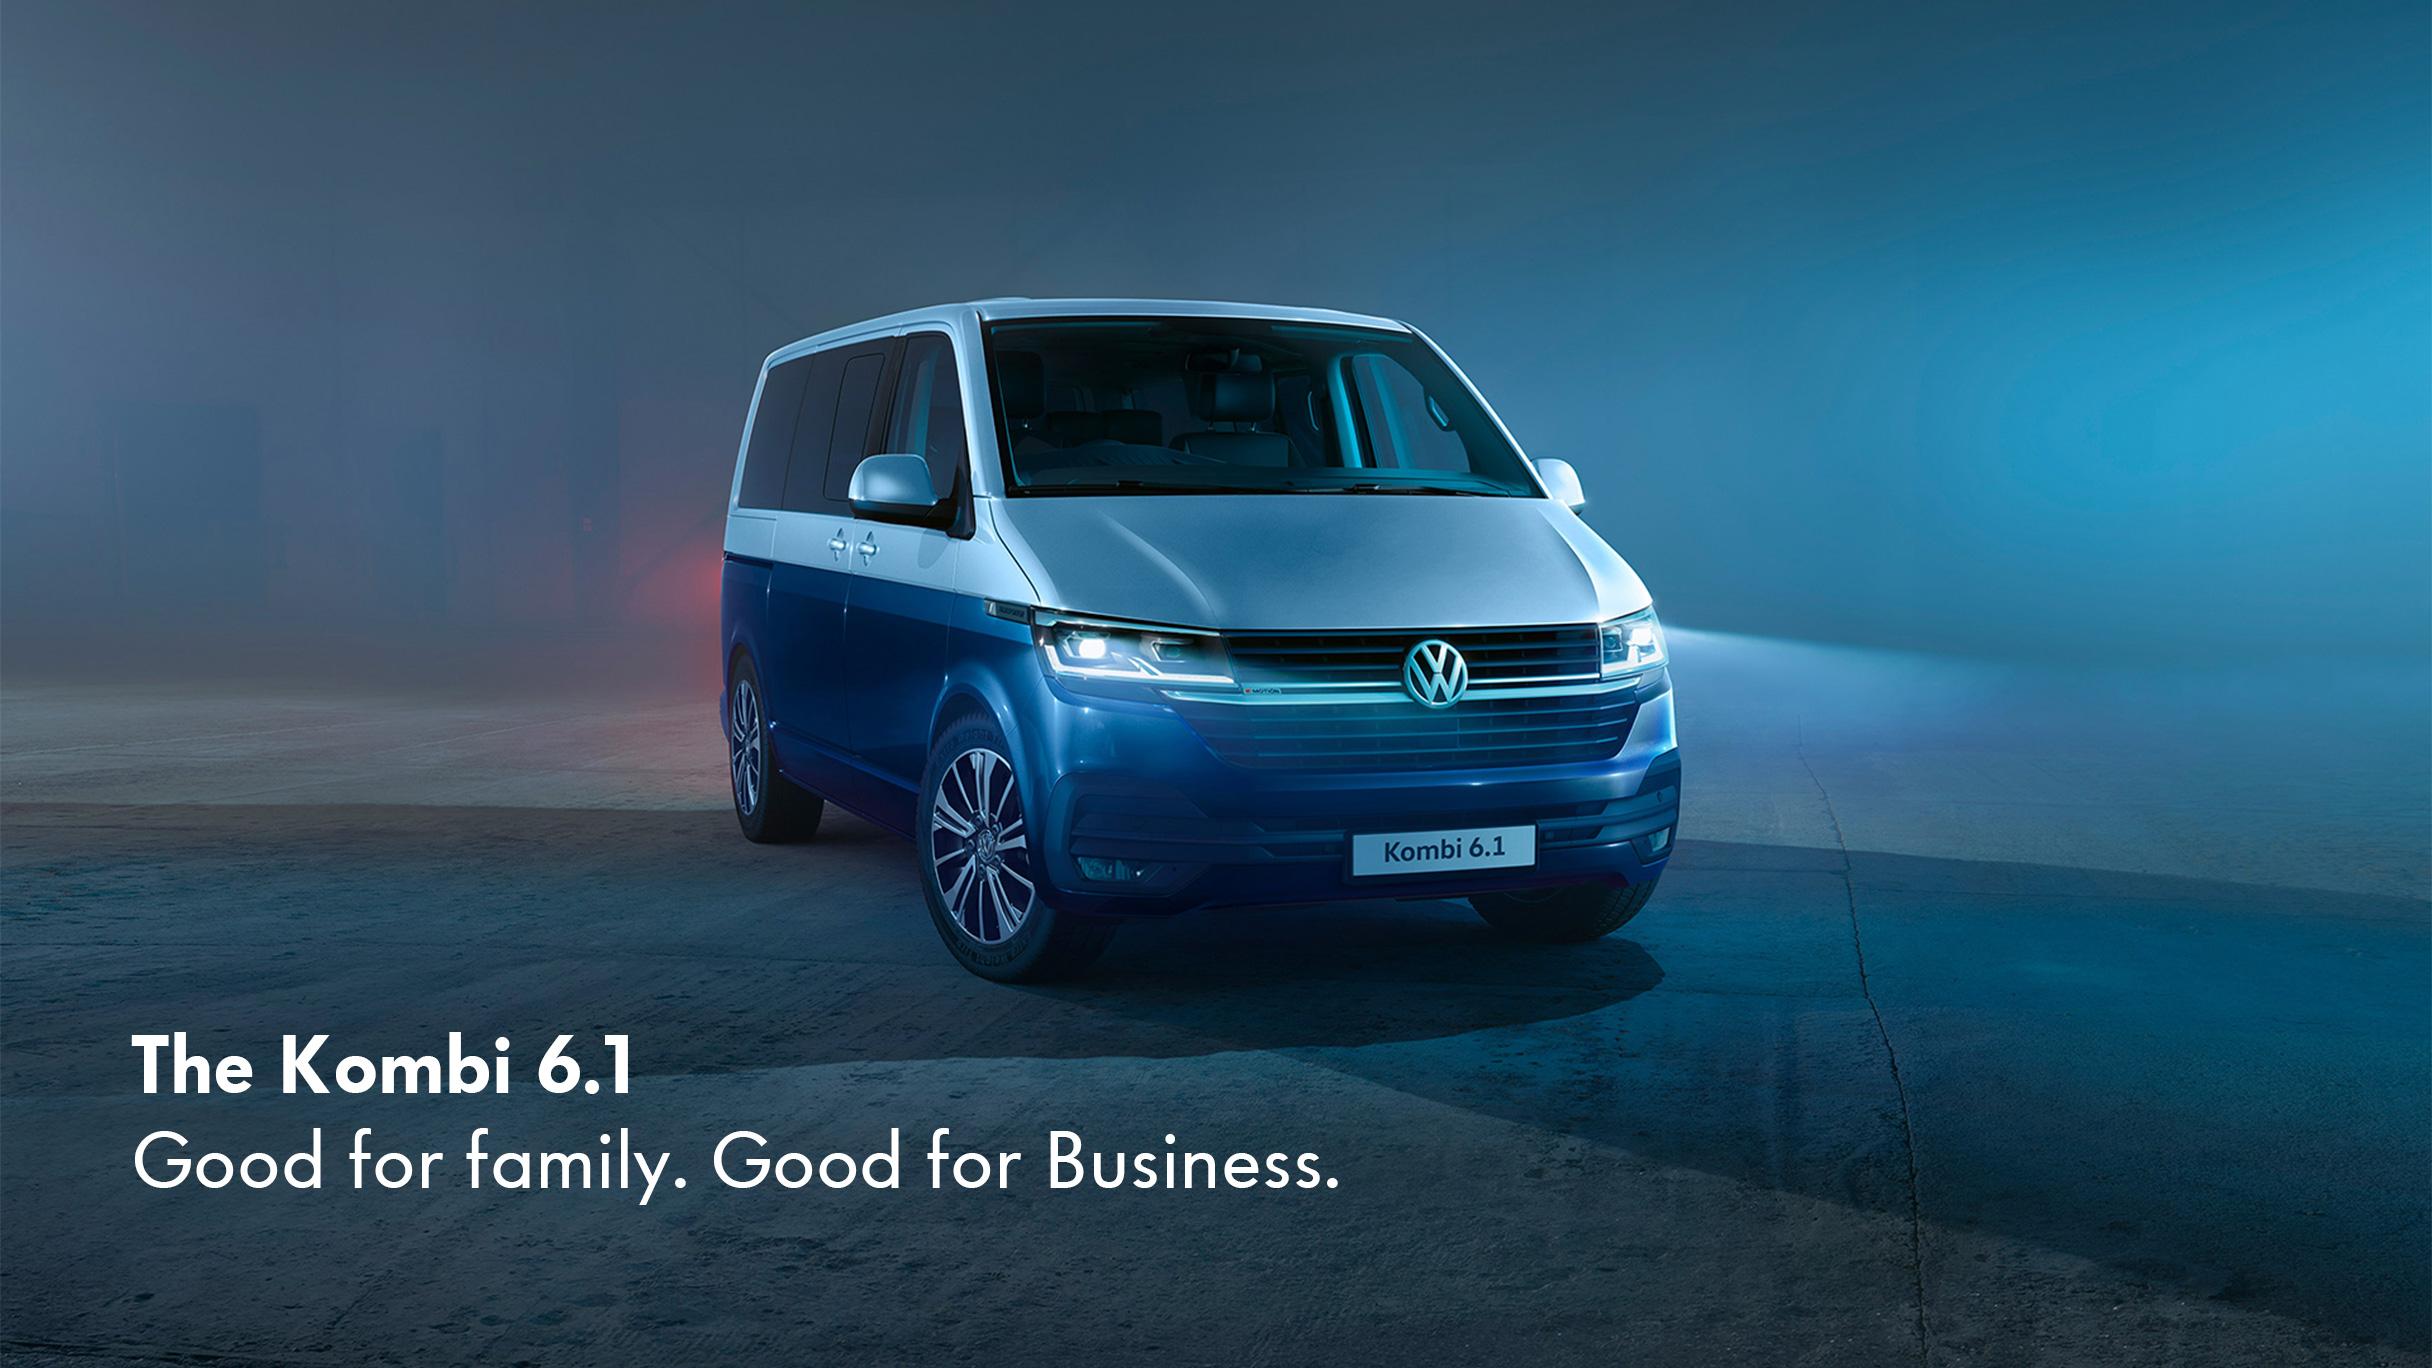 New VW Kombi 6.1